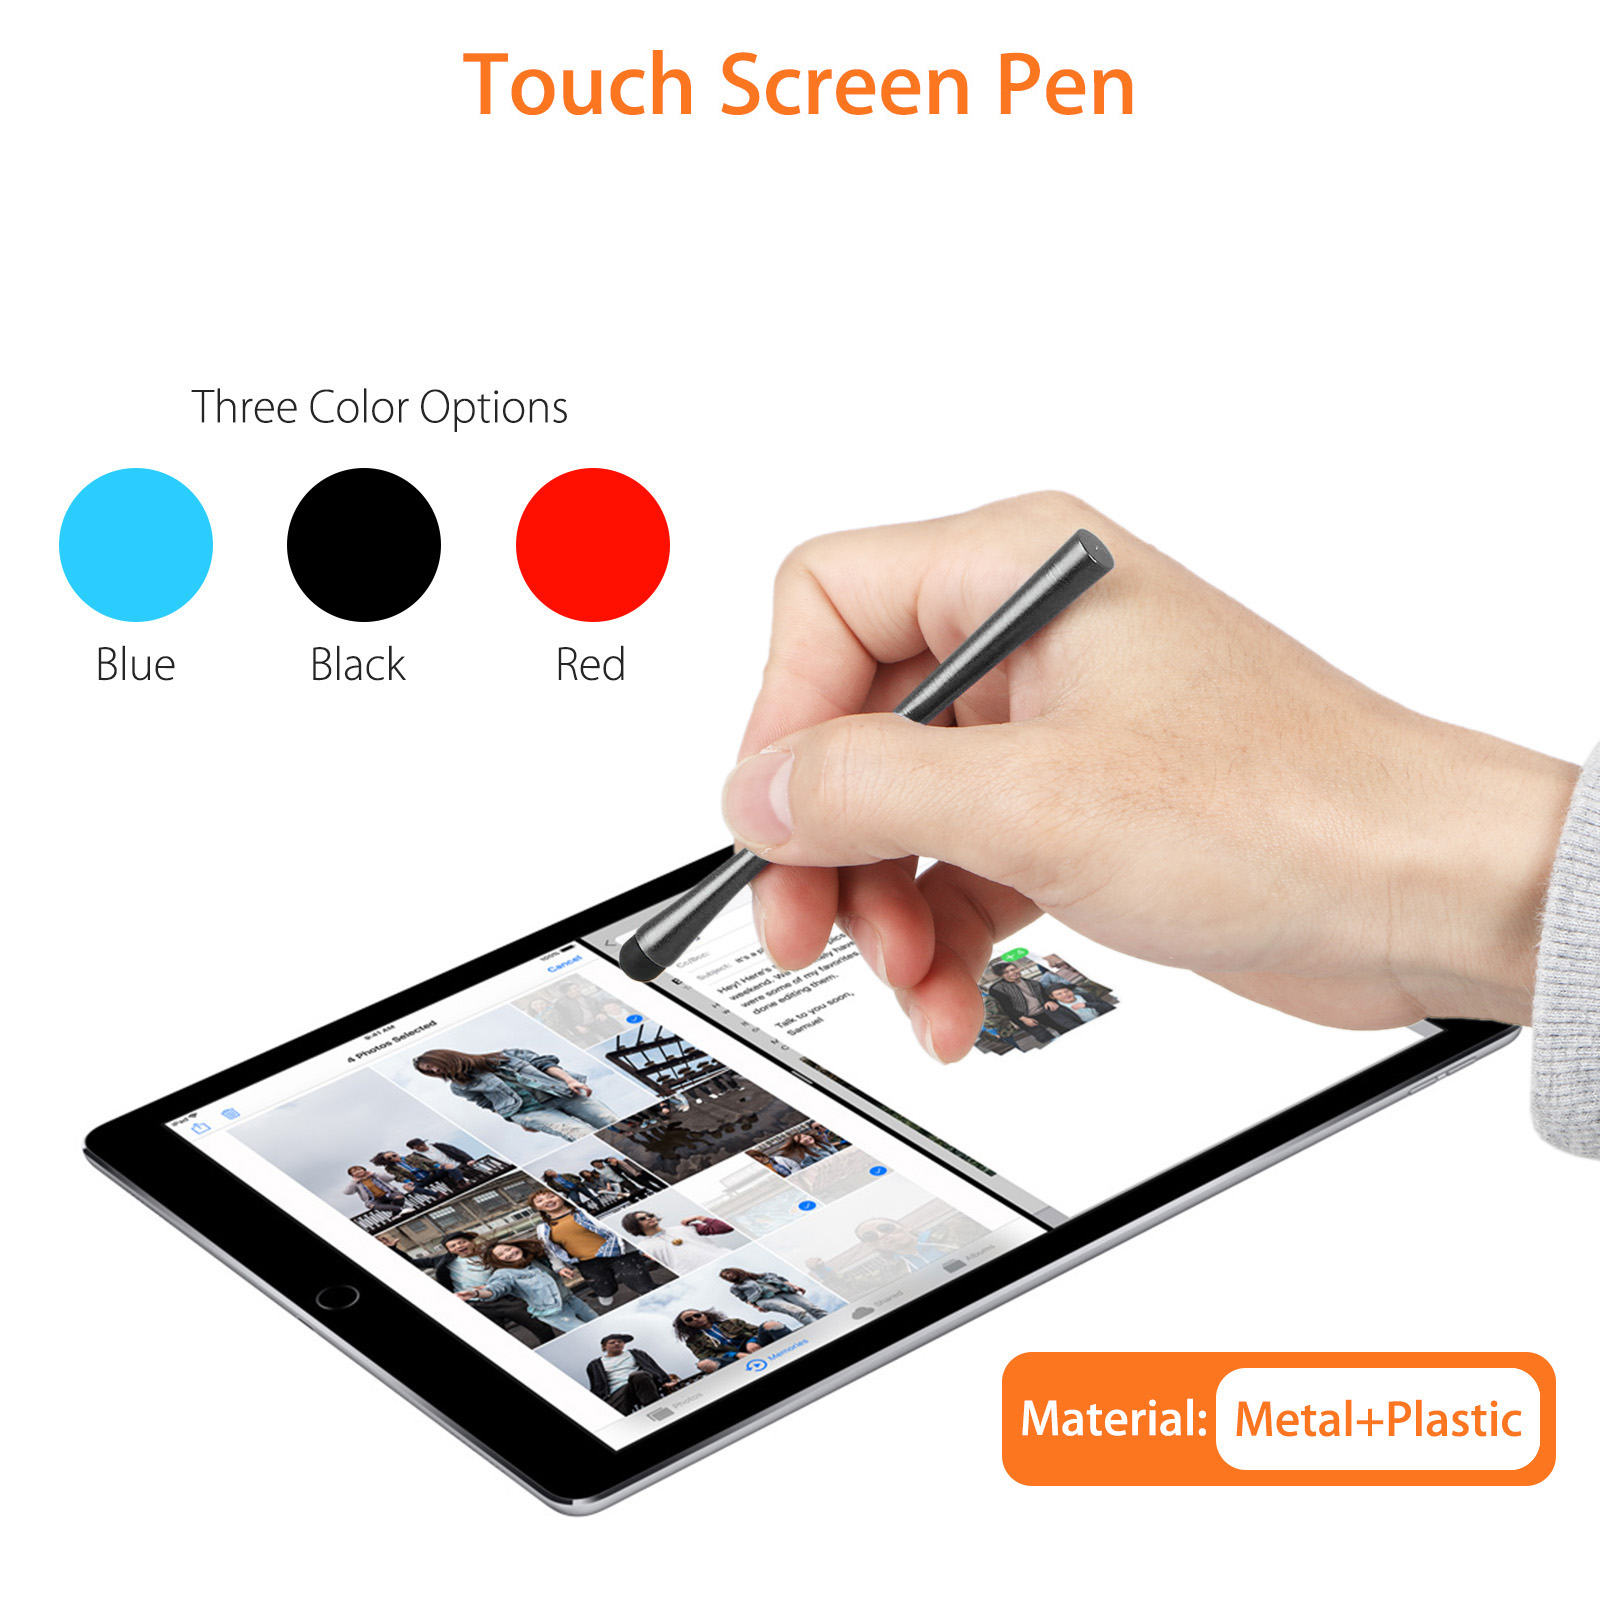 3-Pack Stylus Pen 2 in 1 Fine Point & Mesh Tip for Touch Screen Tablet and Cellphone, iPad Kindle iphone